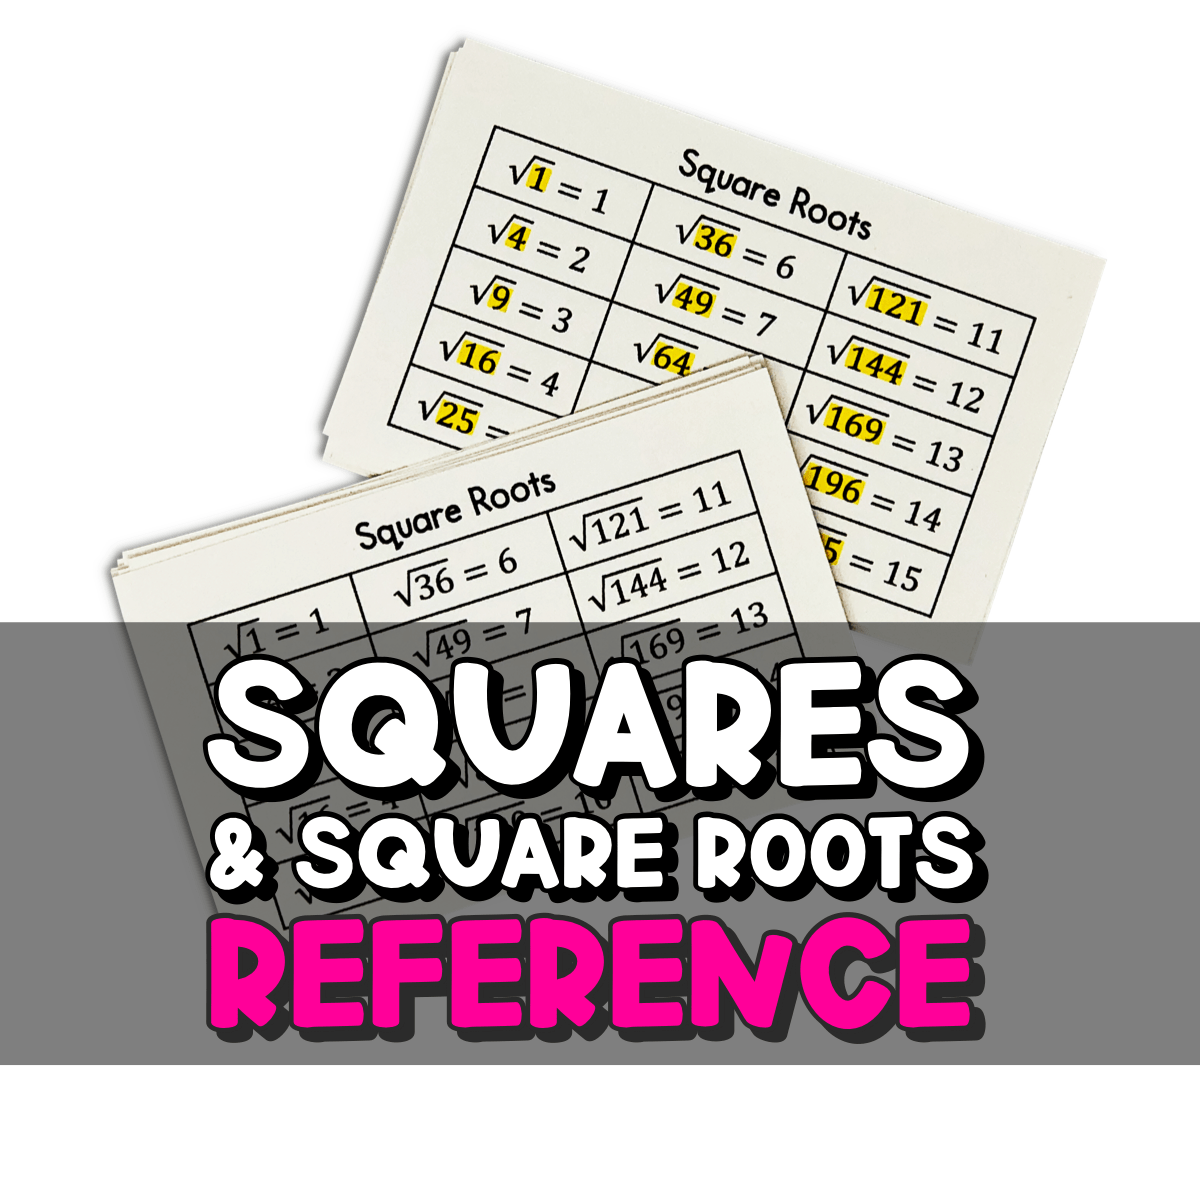 Squares and Square Roots Reference